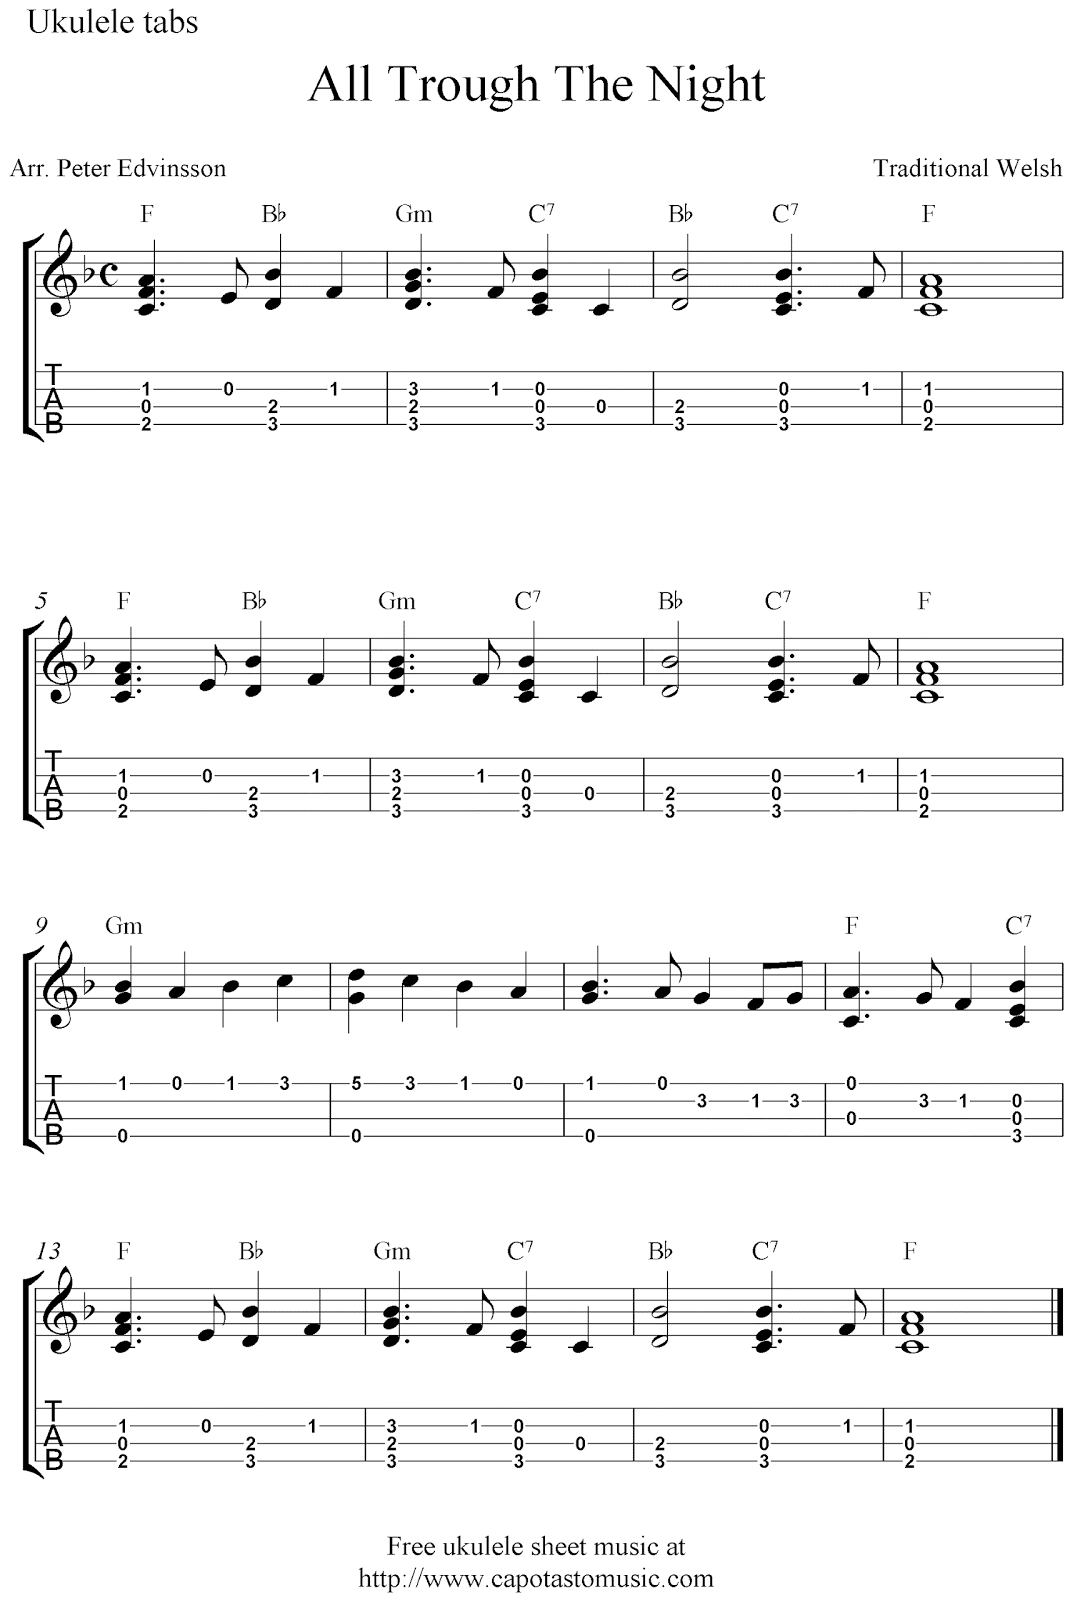 All Trough The Night, free Christmas ukulele tabs